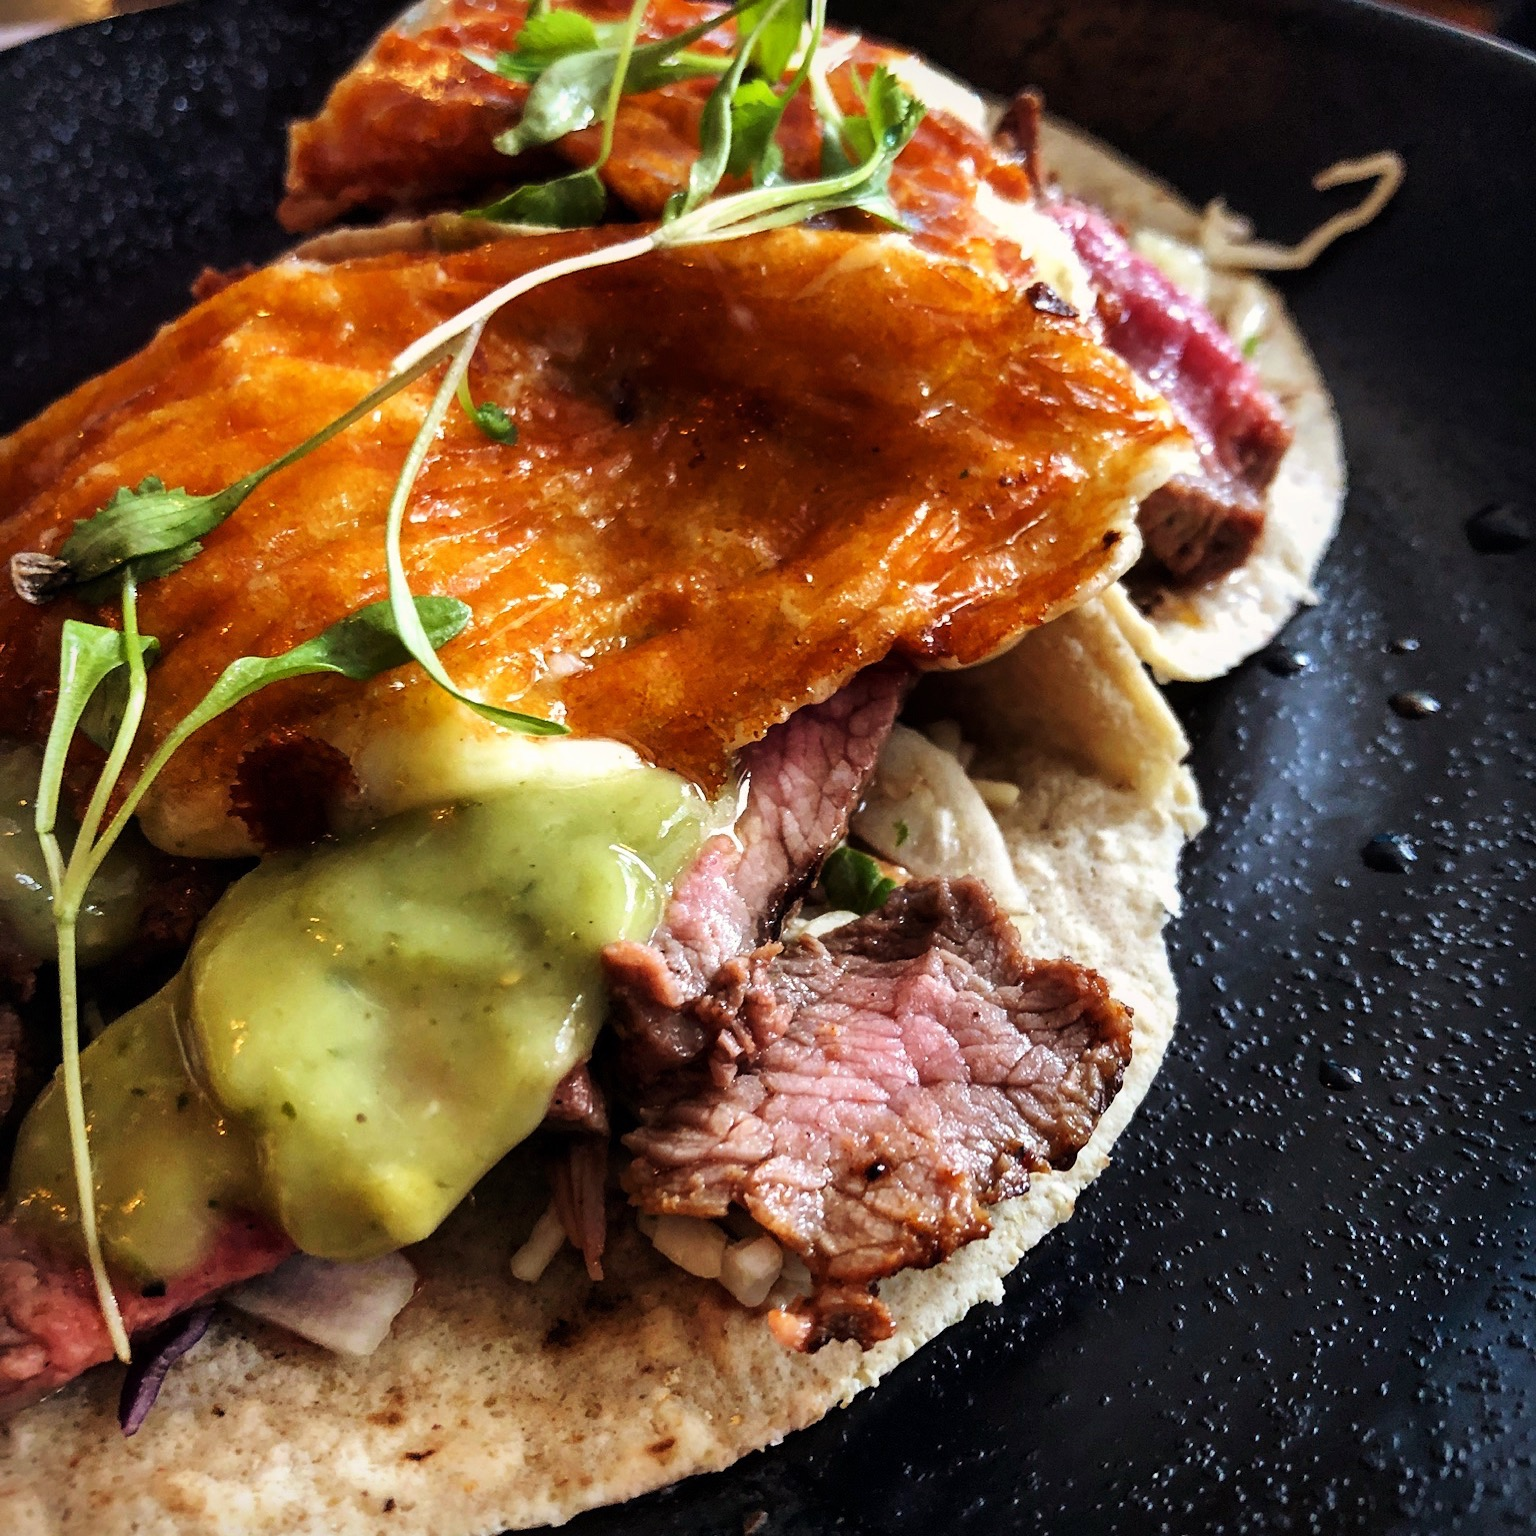 chargrilled steak served with grilled cheese, chipotle salsa & avocado